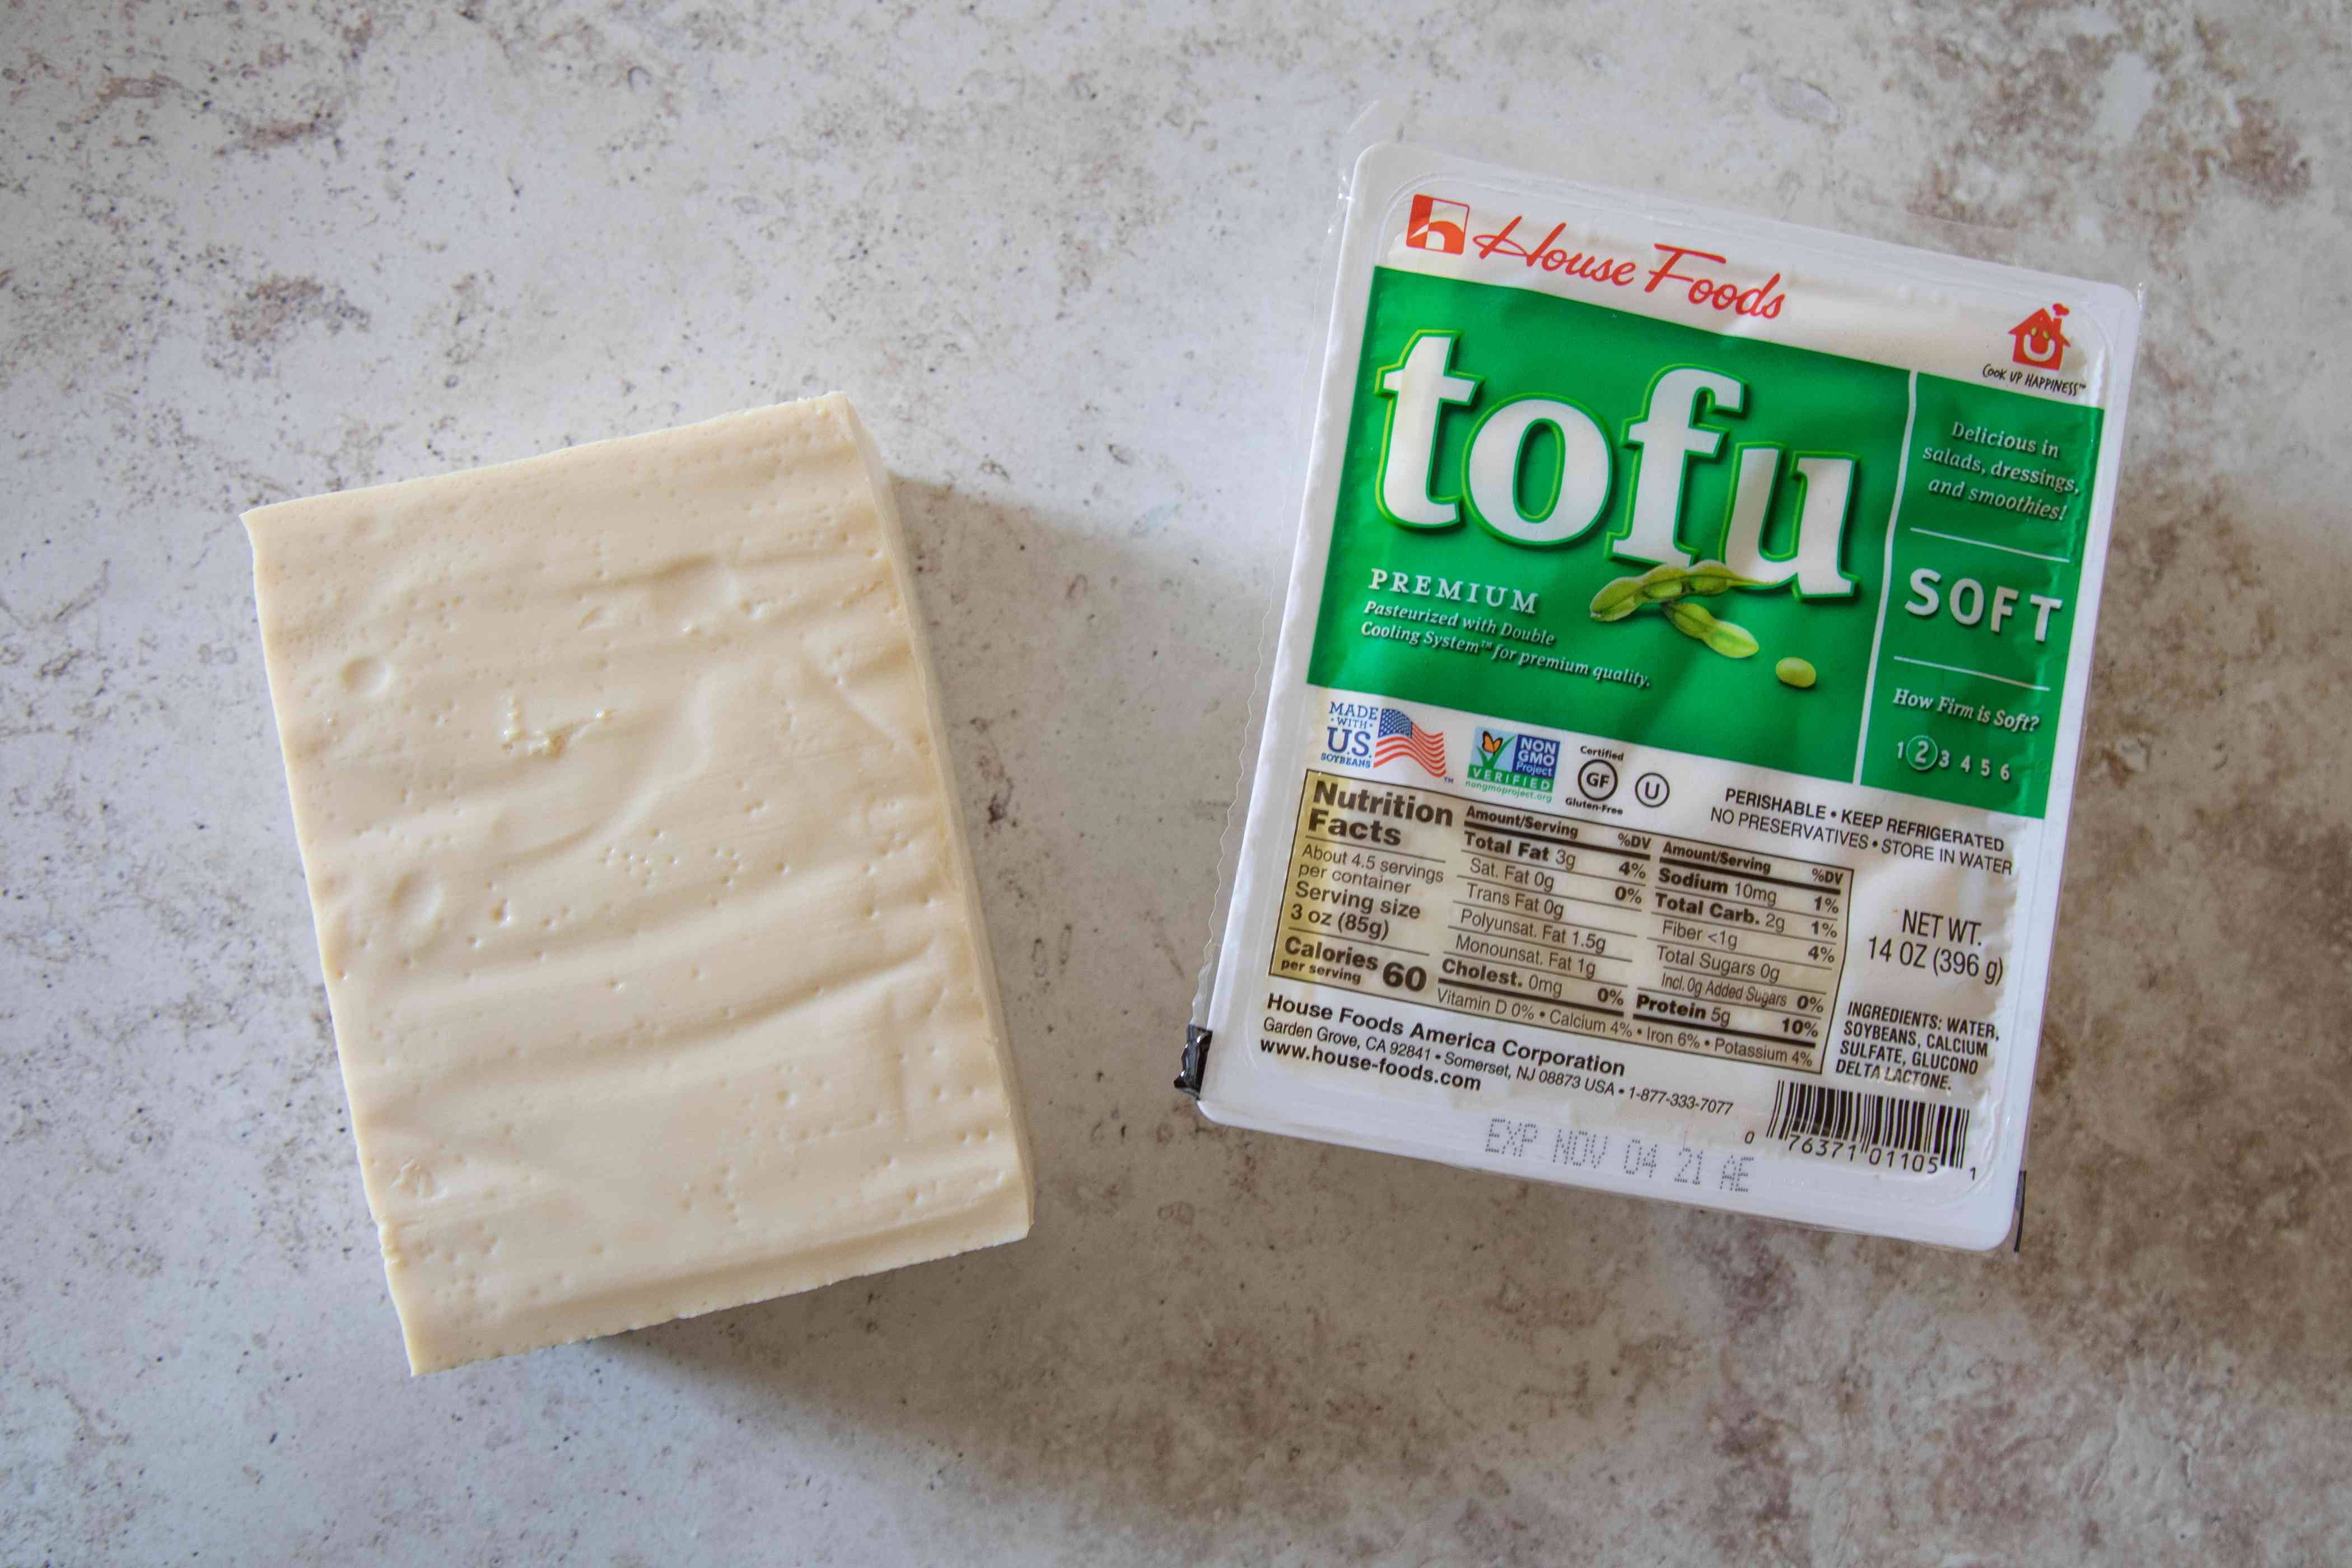 Package of soft tofu